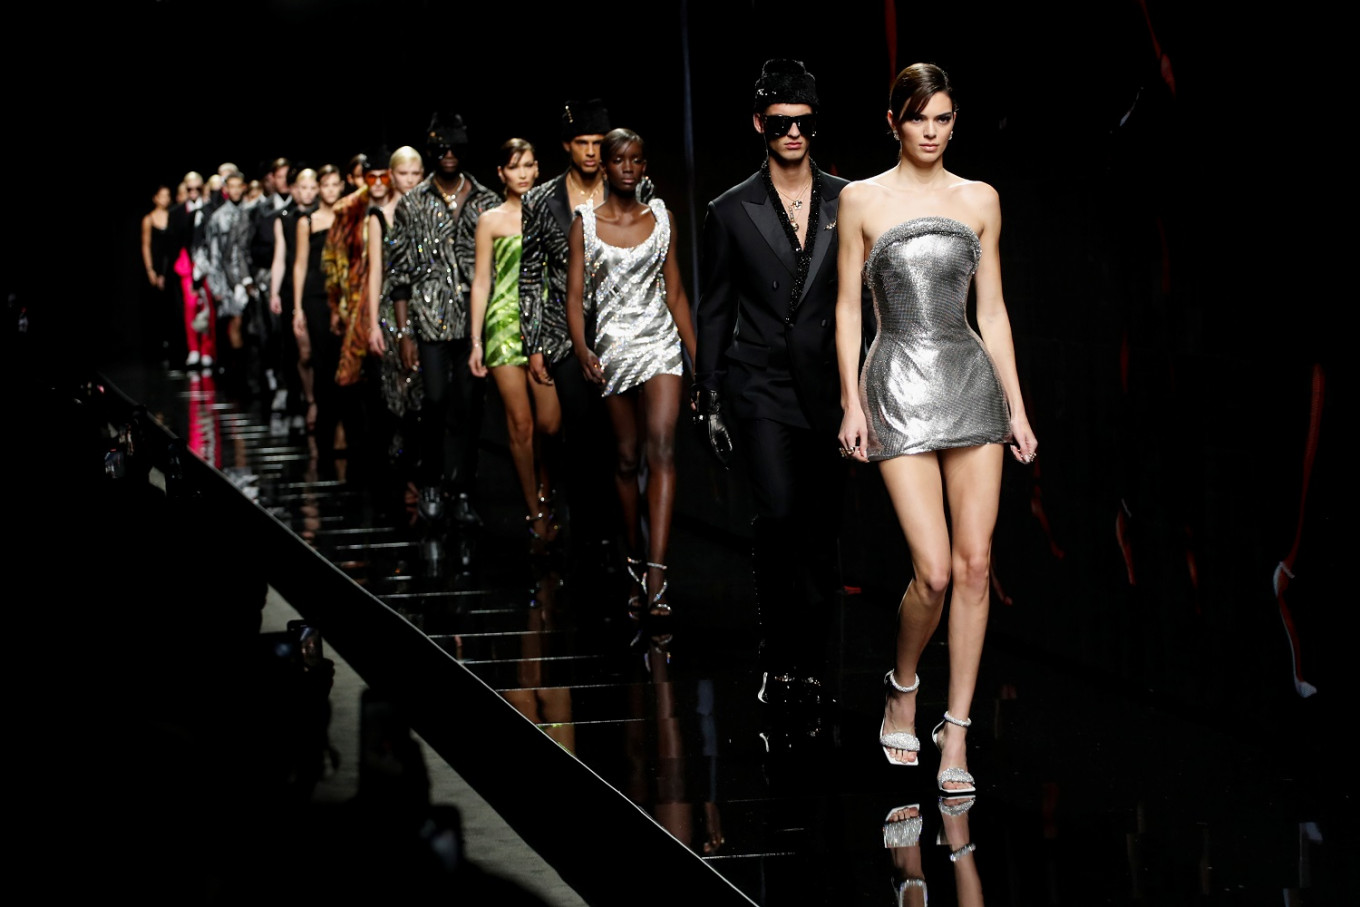 Miniskirts, power shoulders and top models for Versace Fall/Winter 2020